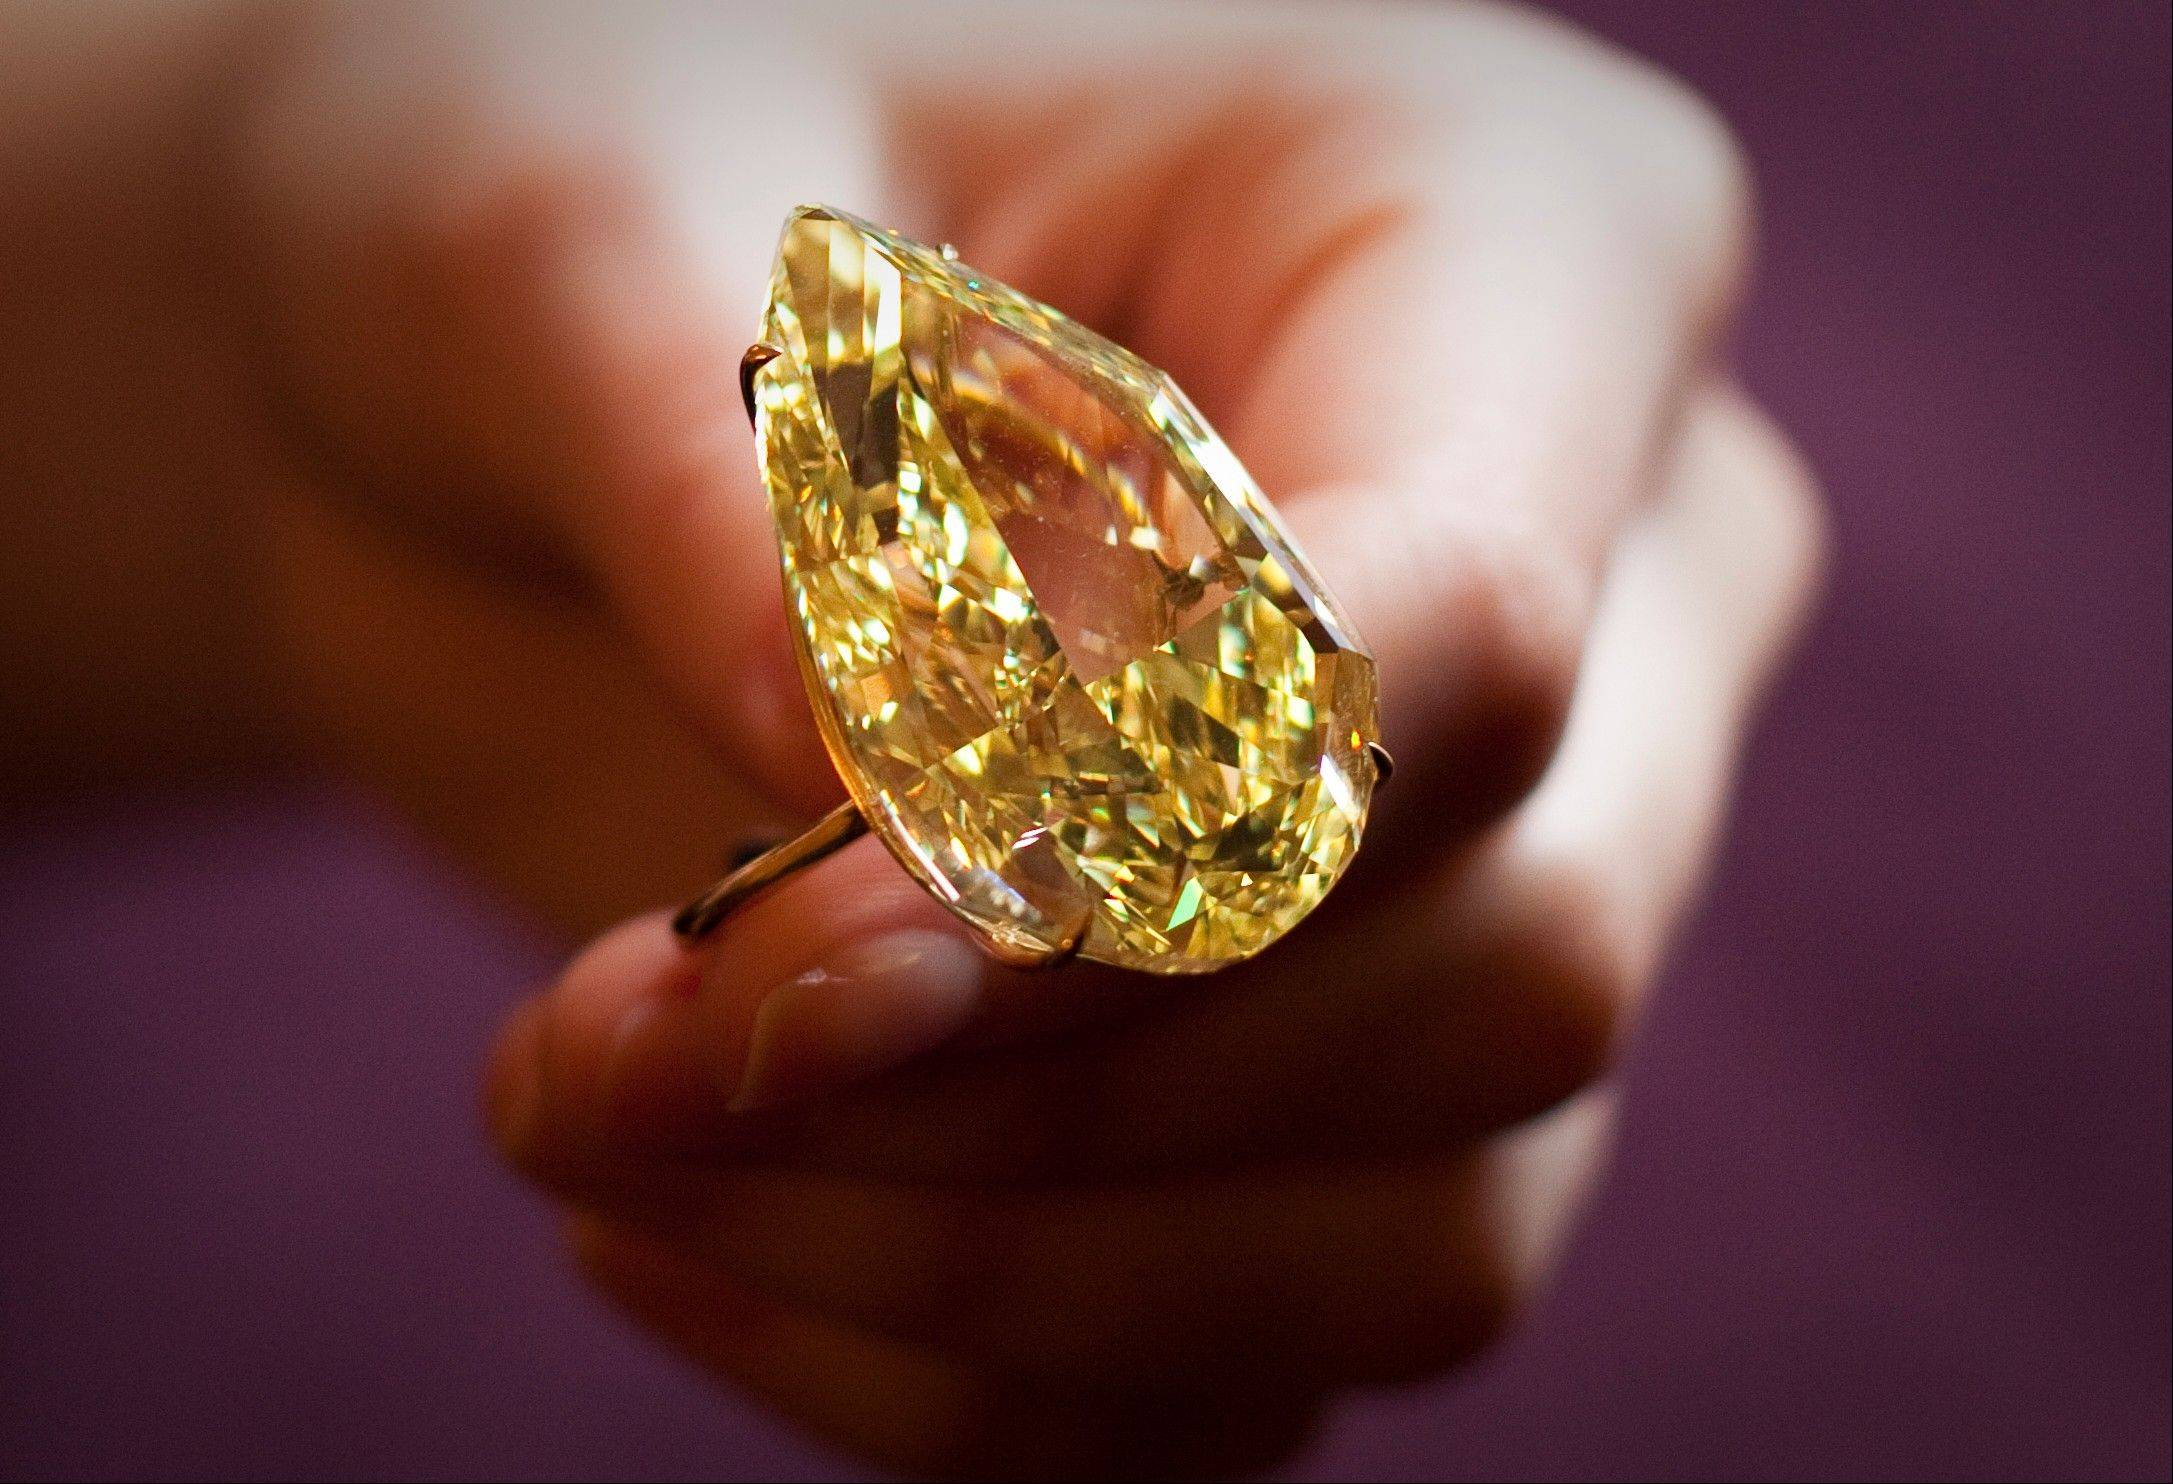 A 110.03 carats Sun-Drop Diamond described as fancy vivid yellow, the highest color grading by gemstone experts at a Sotheby's preview show in Geneva, Switzerland.